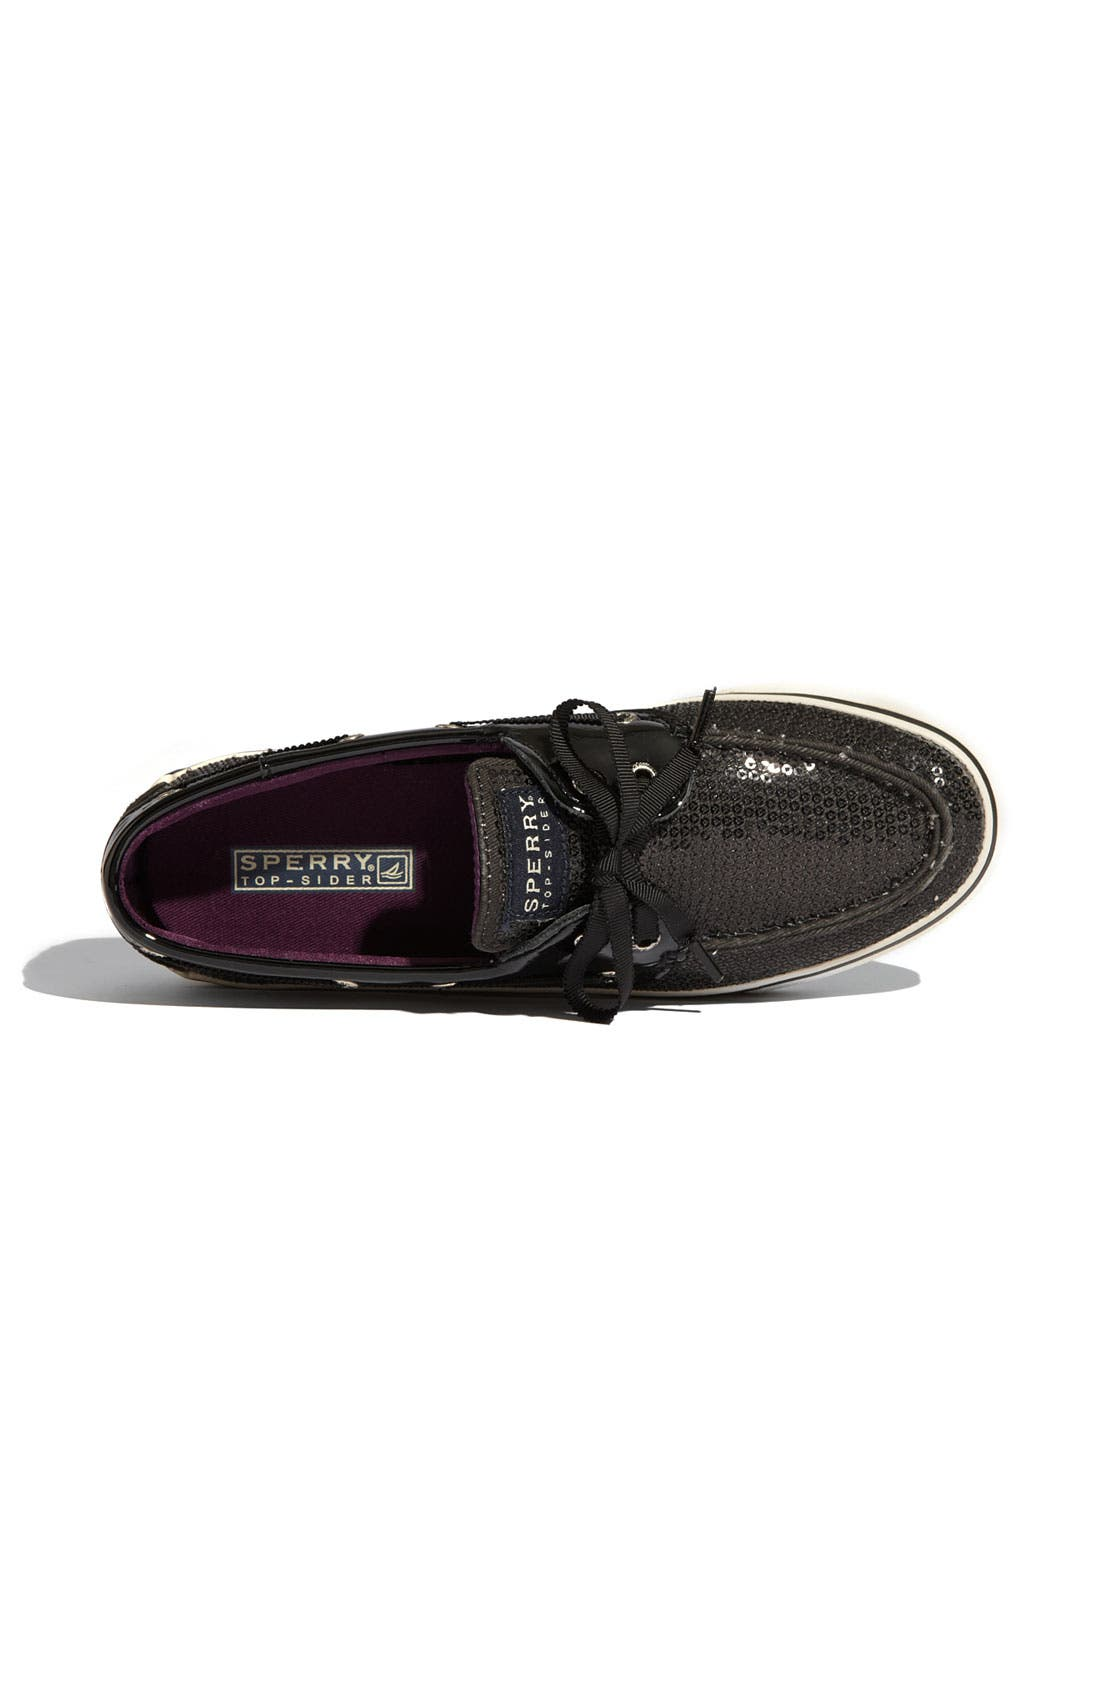 Top-Sider<sup>®</sup> 'Bahama' Sequined Boat Shoe,                             Alternate thumbnail 169, color,